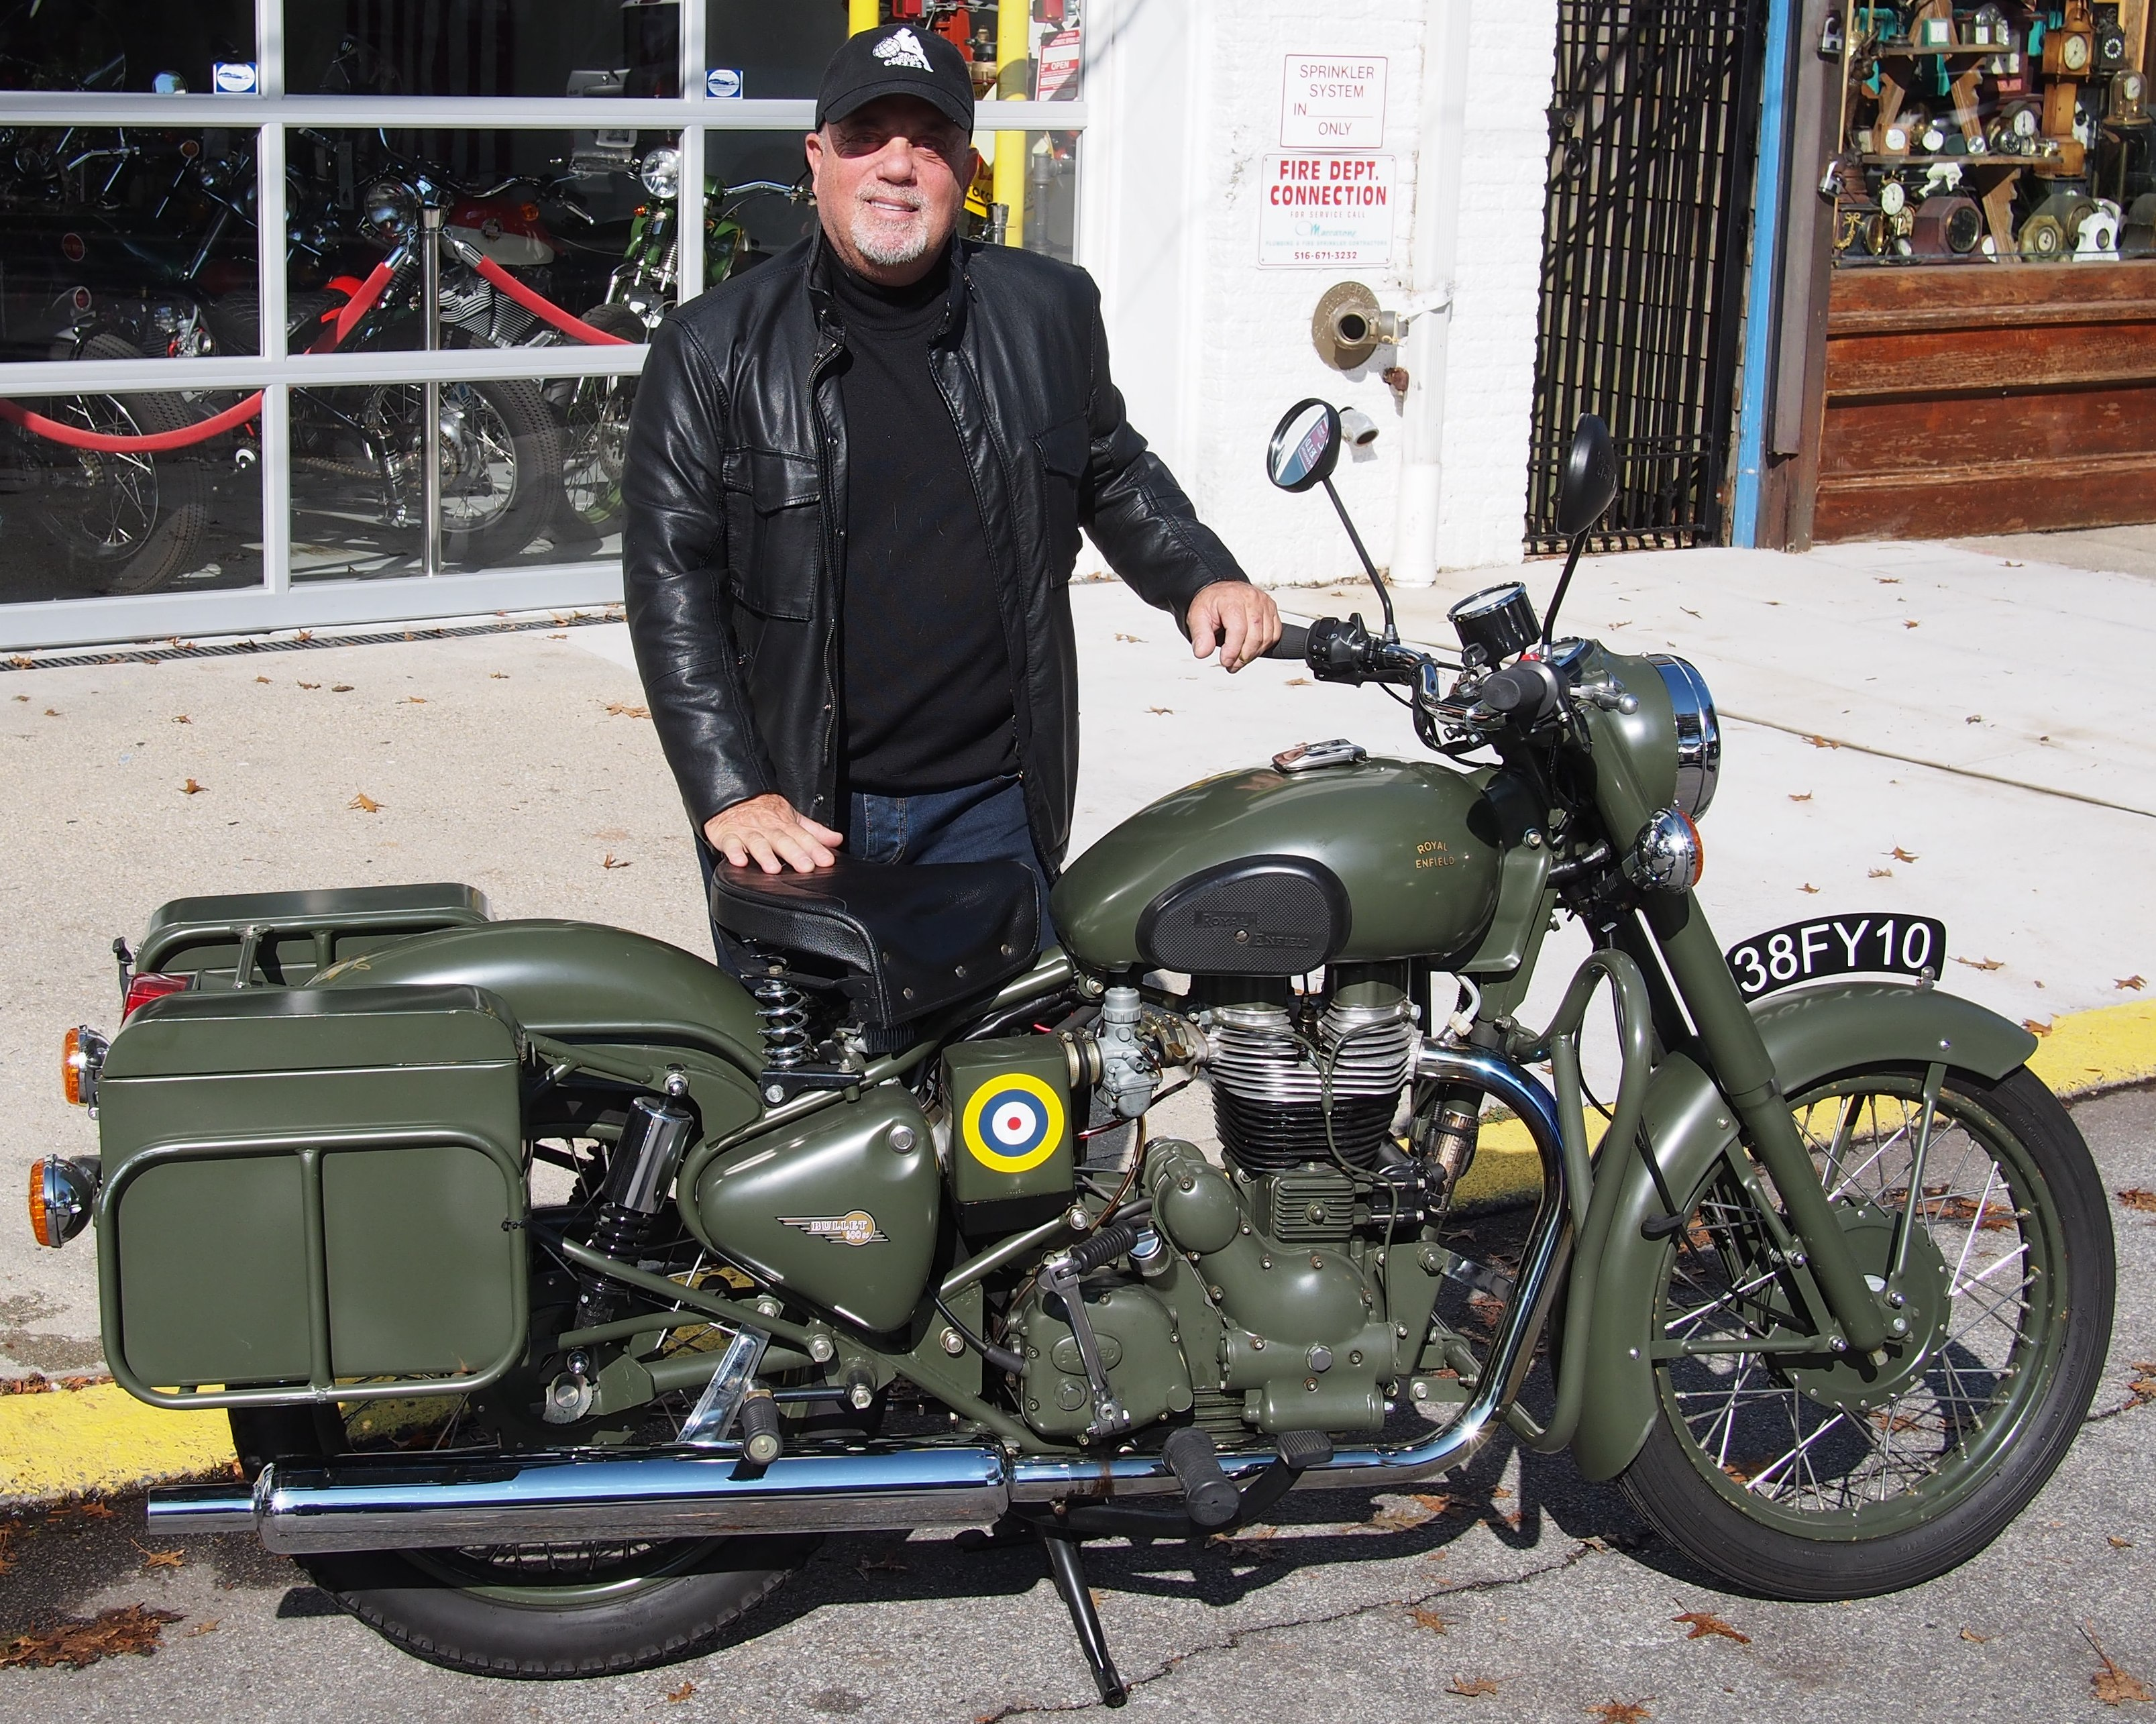 Charitybuzz Drive Off In This Incredible Royal Enfield